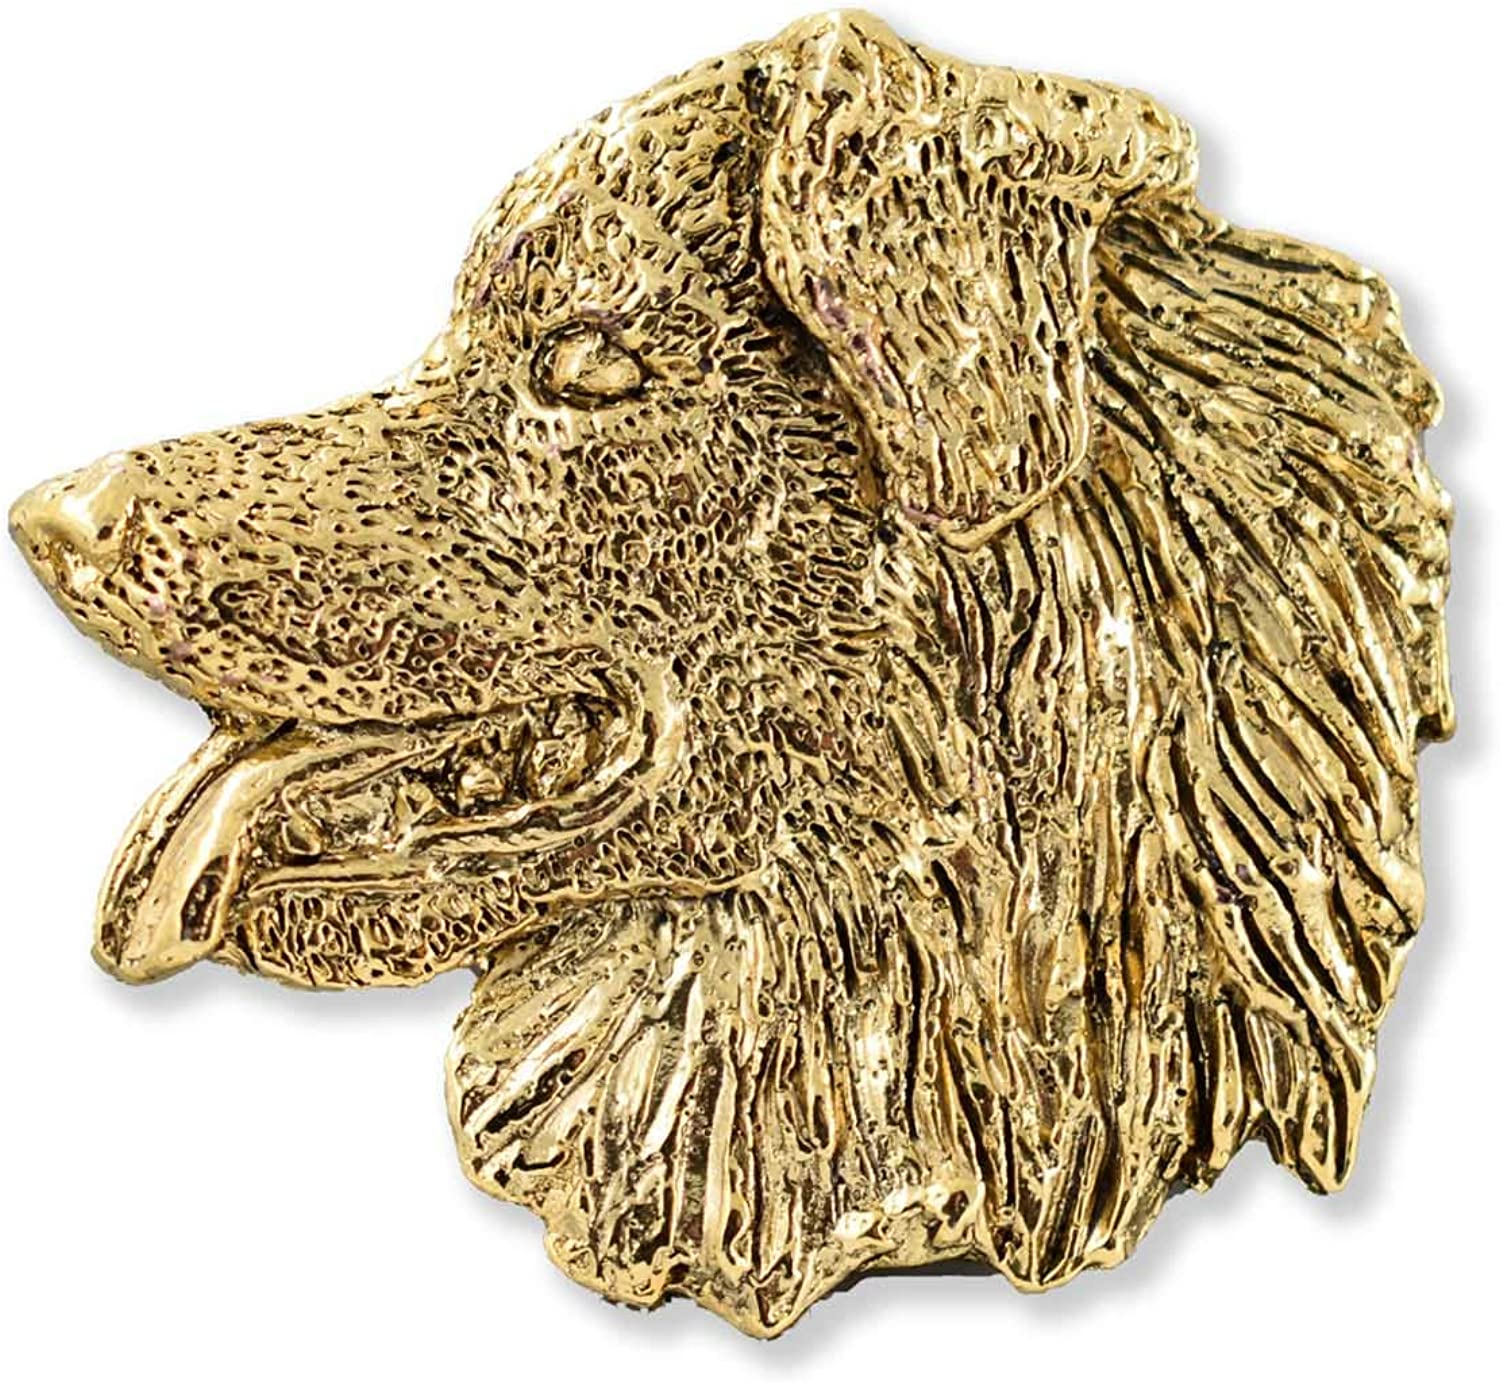 Realistic Lead Free Antique Pewter All Pet Breeds Made in USA Brooch Dog Lapel Pin